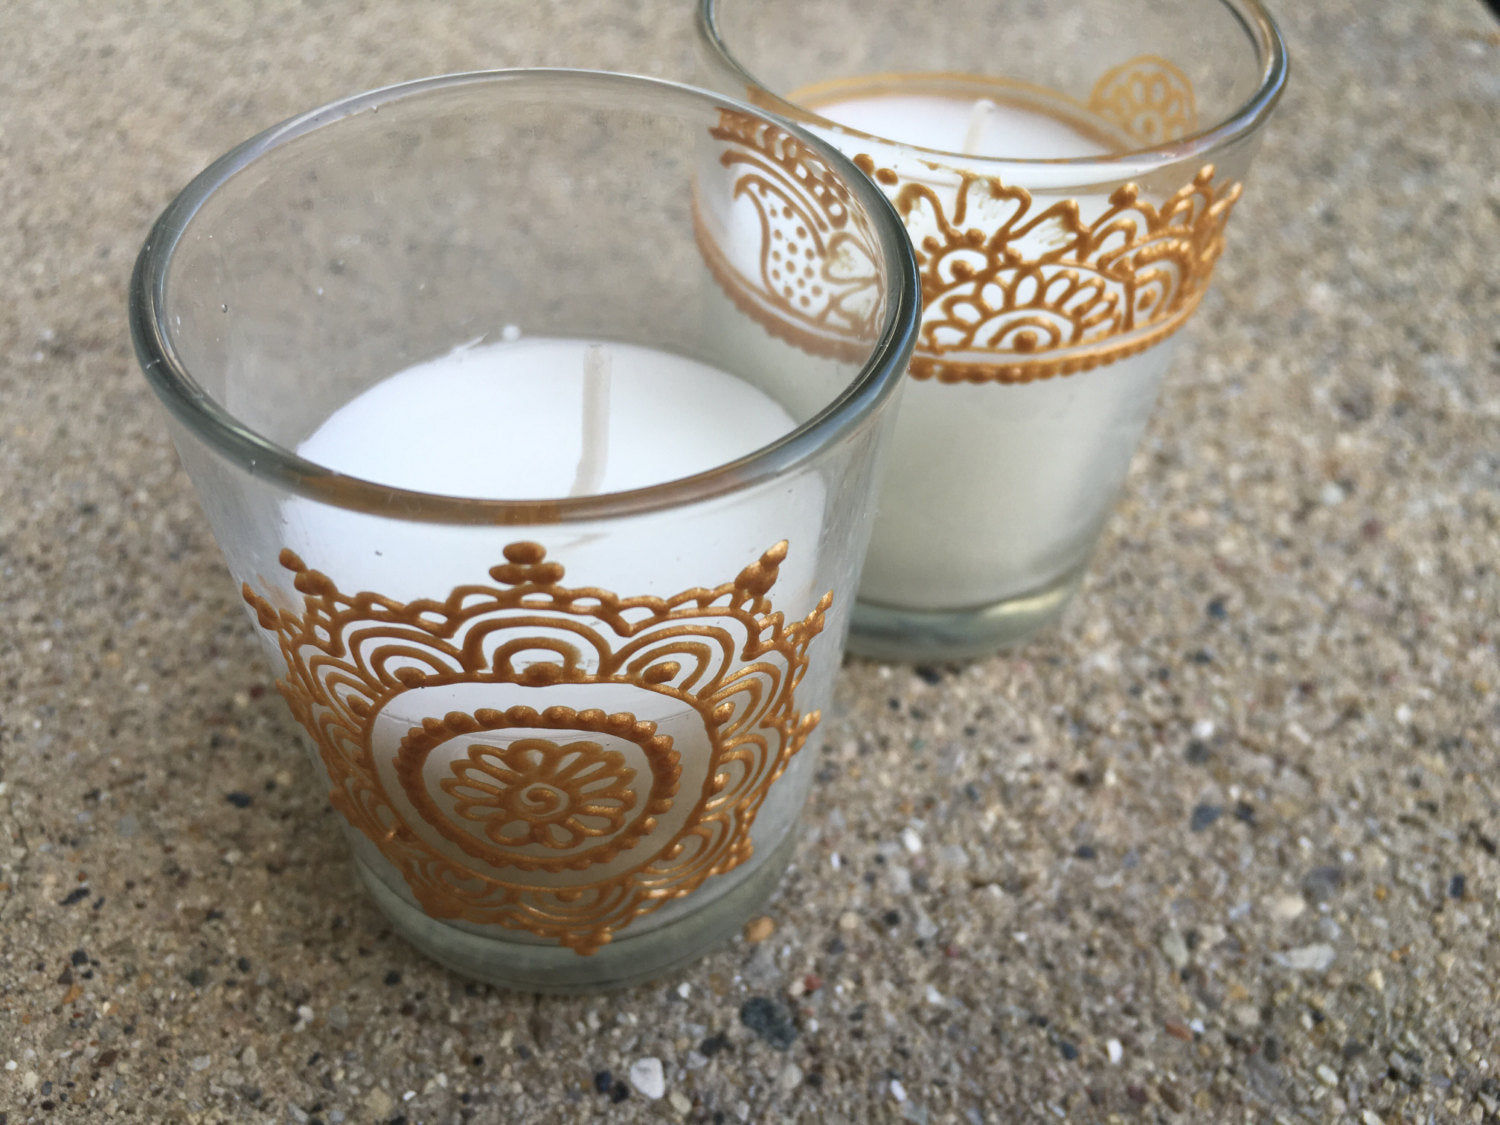 Set of 2 Handpainted Votive Candles in Gold